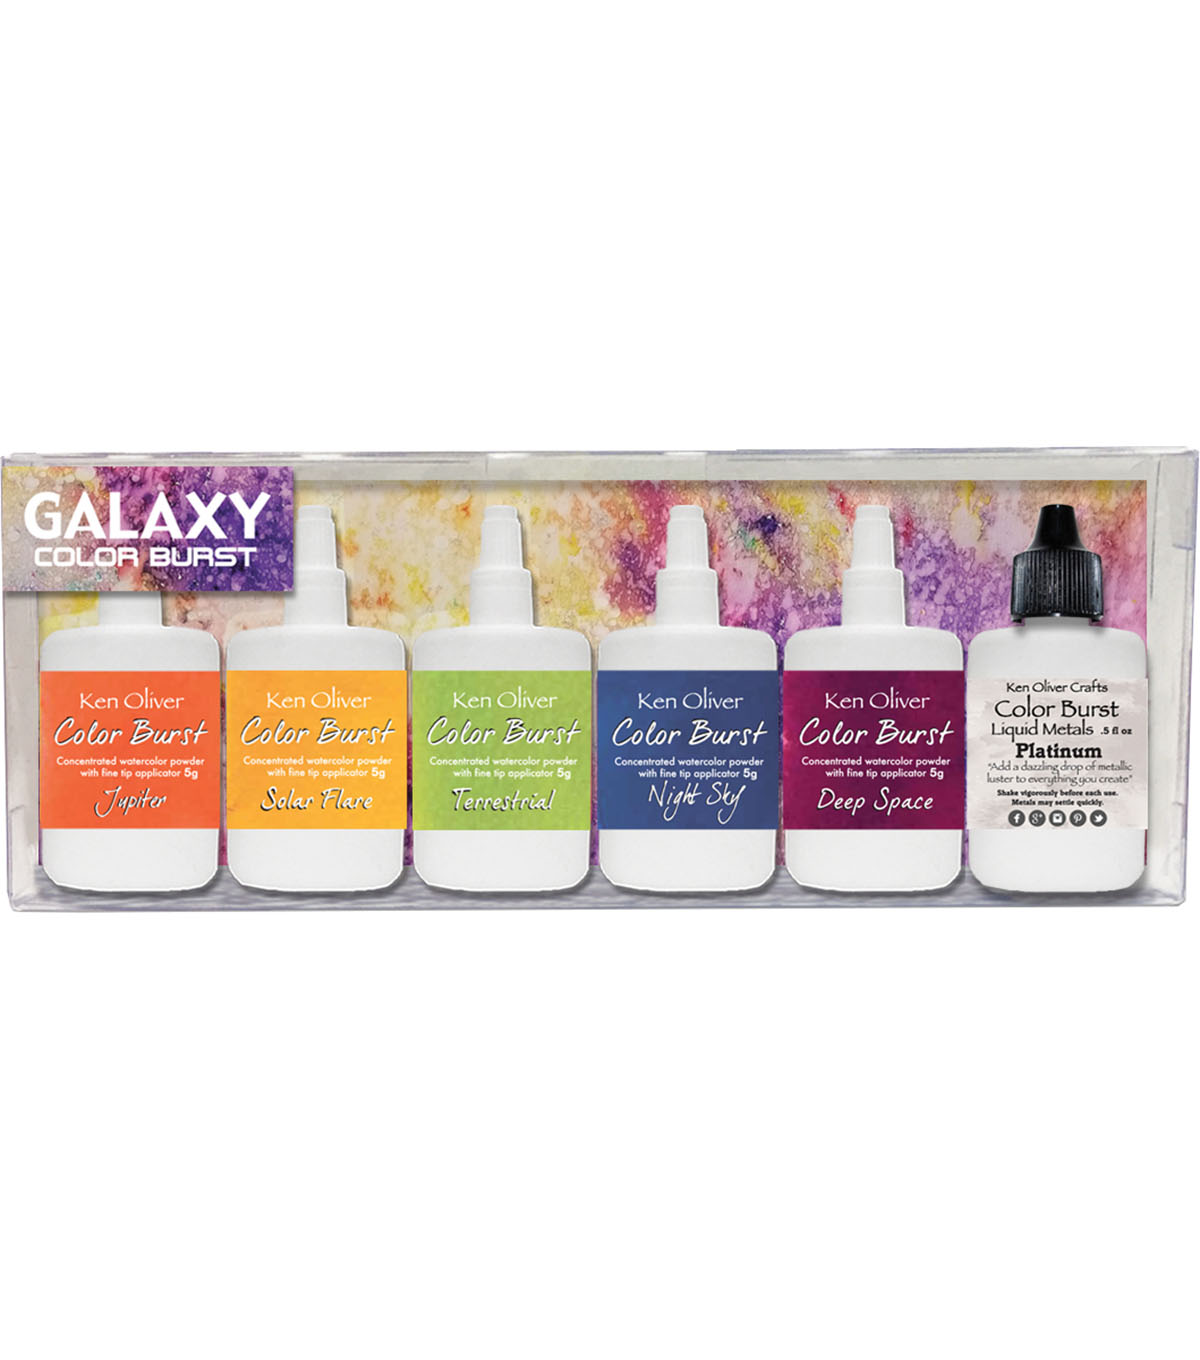 Ken Oliver Color Burst 5 pk Watercolor Powders with Liquid Metal-Galaxy